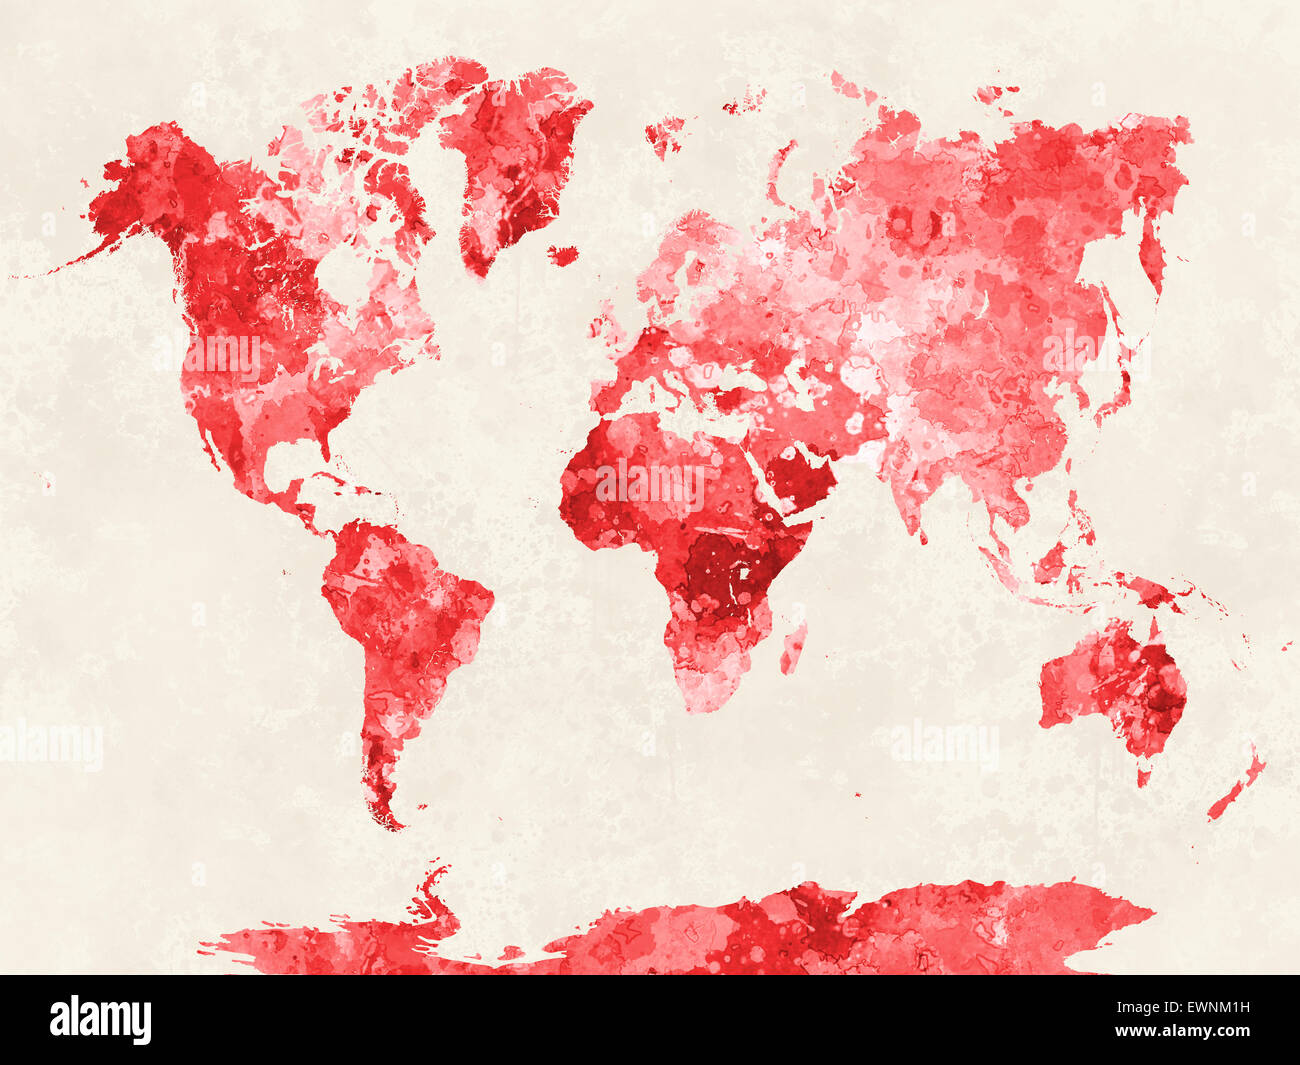 World map in watercolor painting abstract splatters stock photo world map in watercolor painting abstract splatters publicscrutiny Image collections